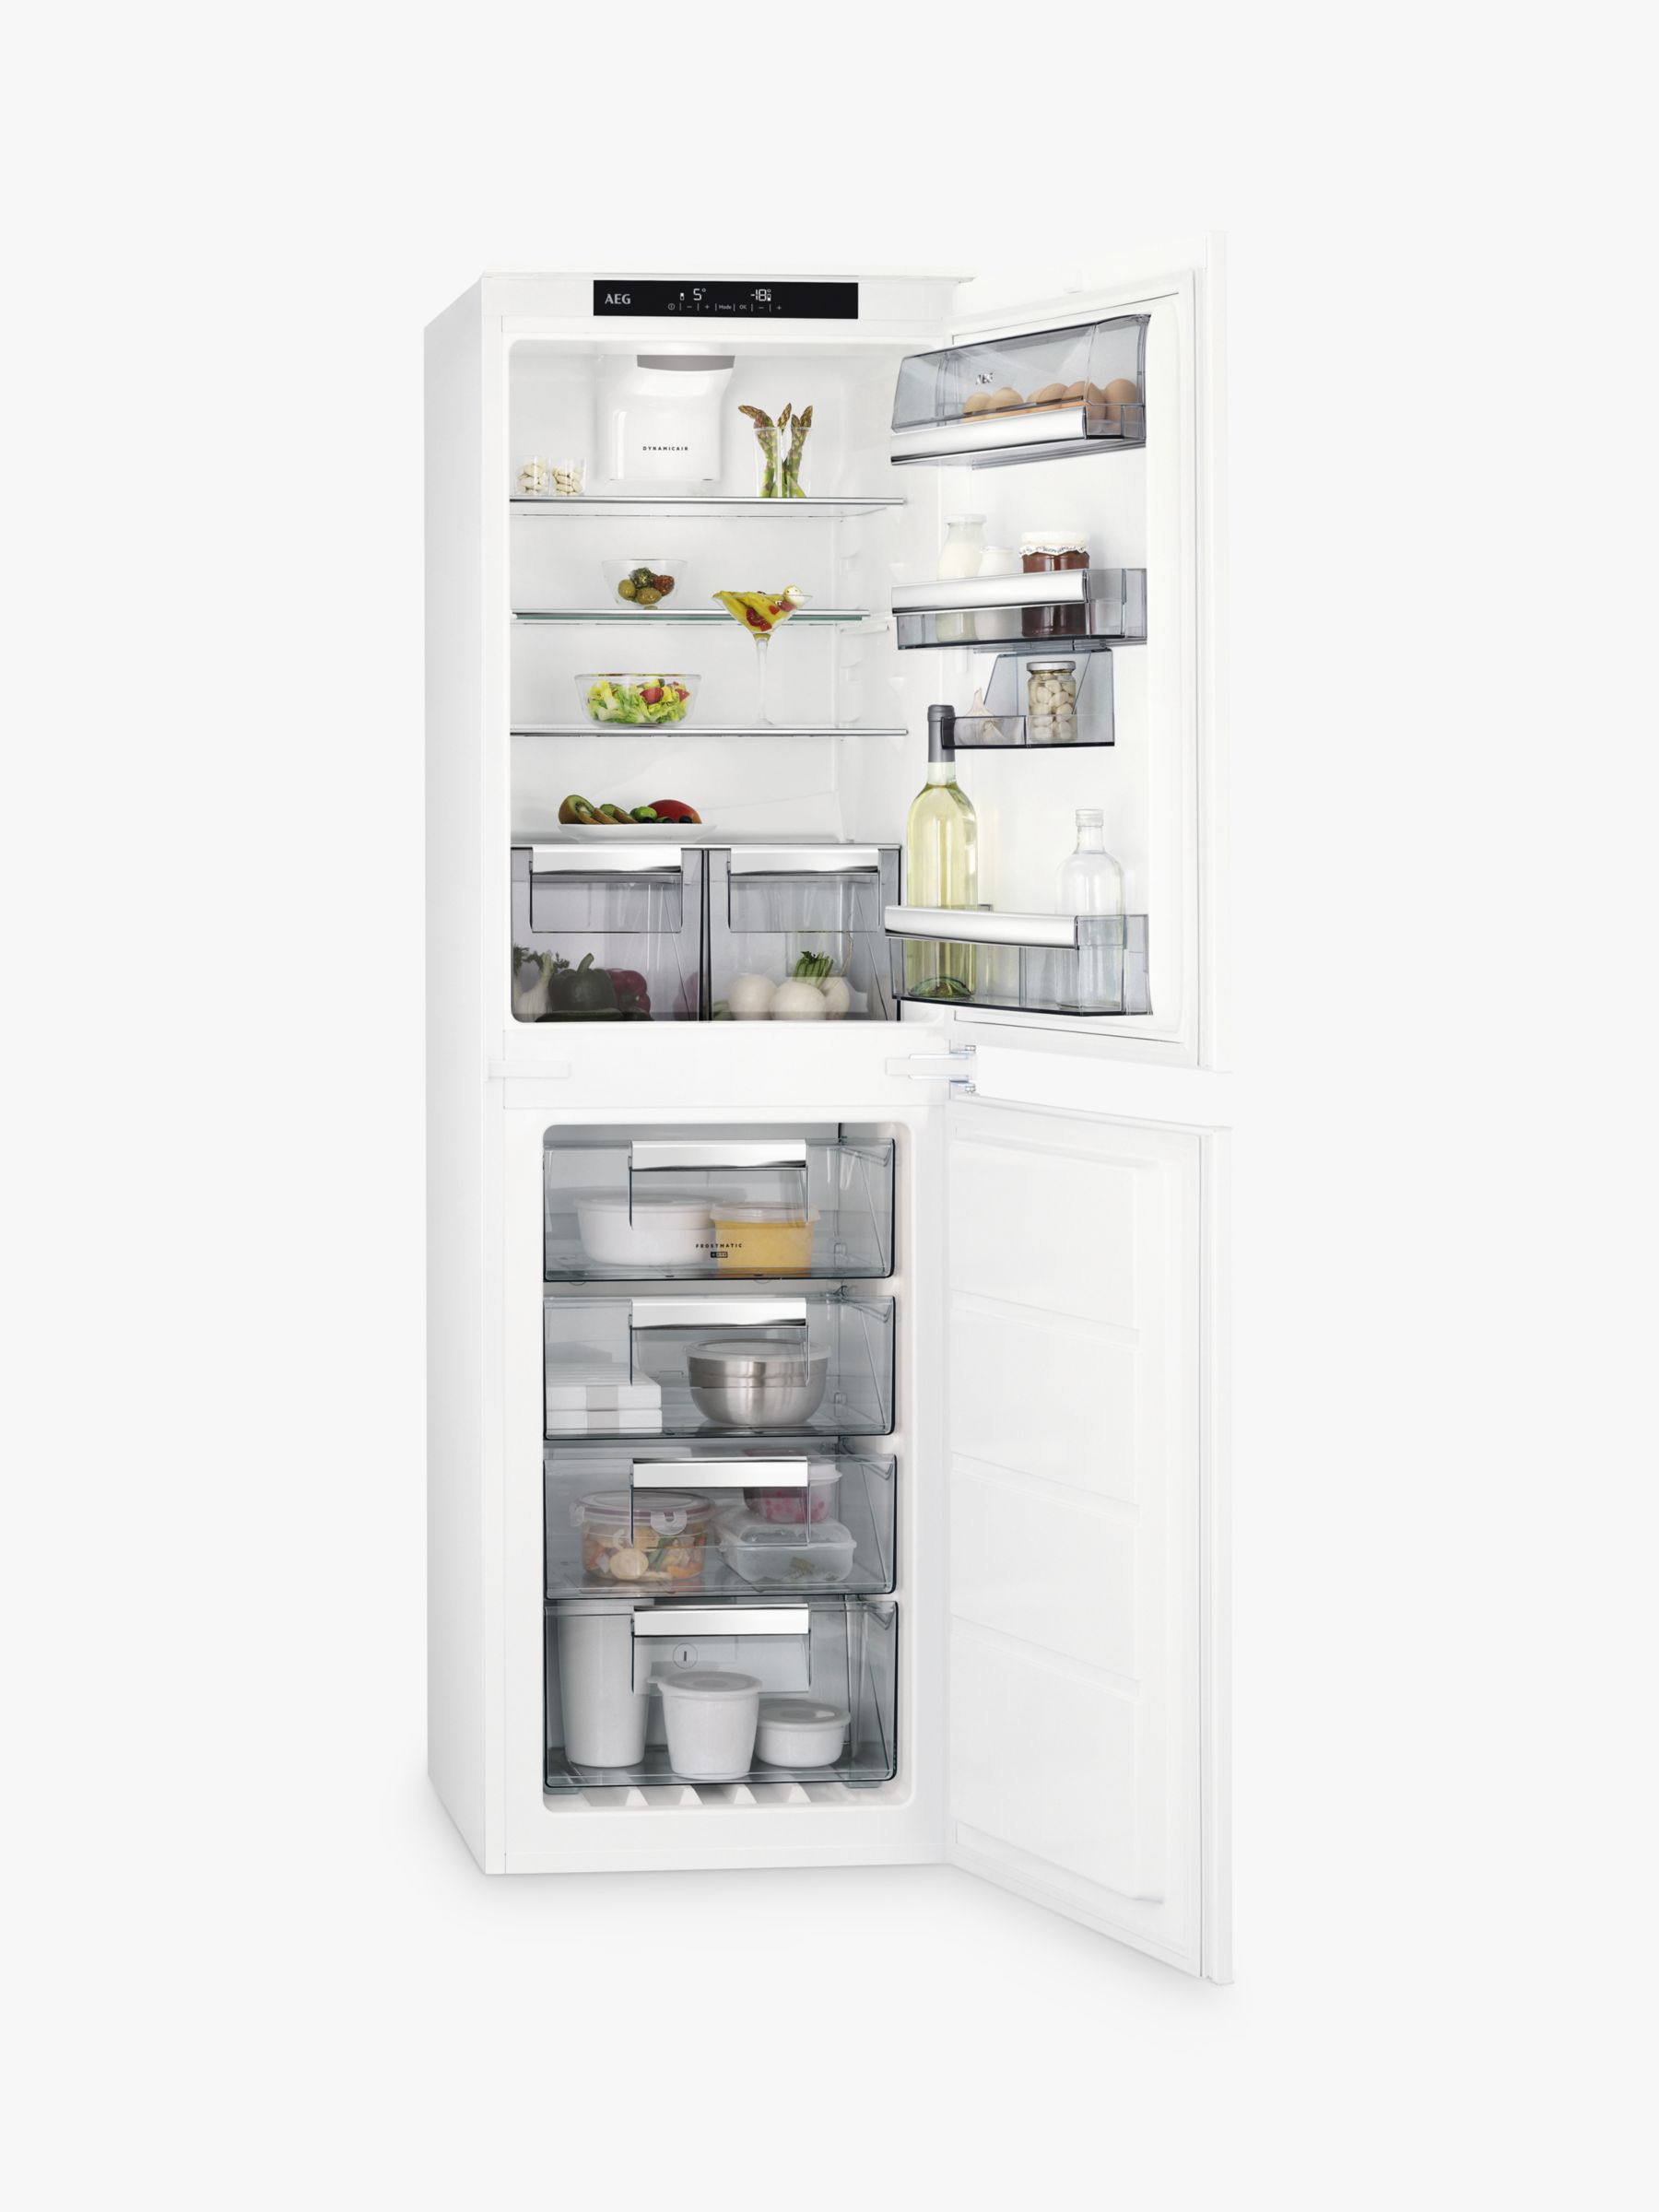 AEG AEG SCE8182XTS Integrated Fridge Freezer, A++ Energy Rating, 54cm Wide, White